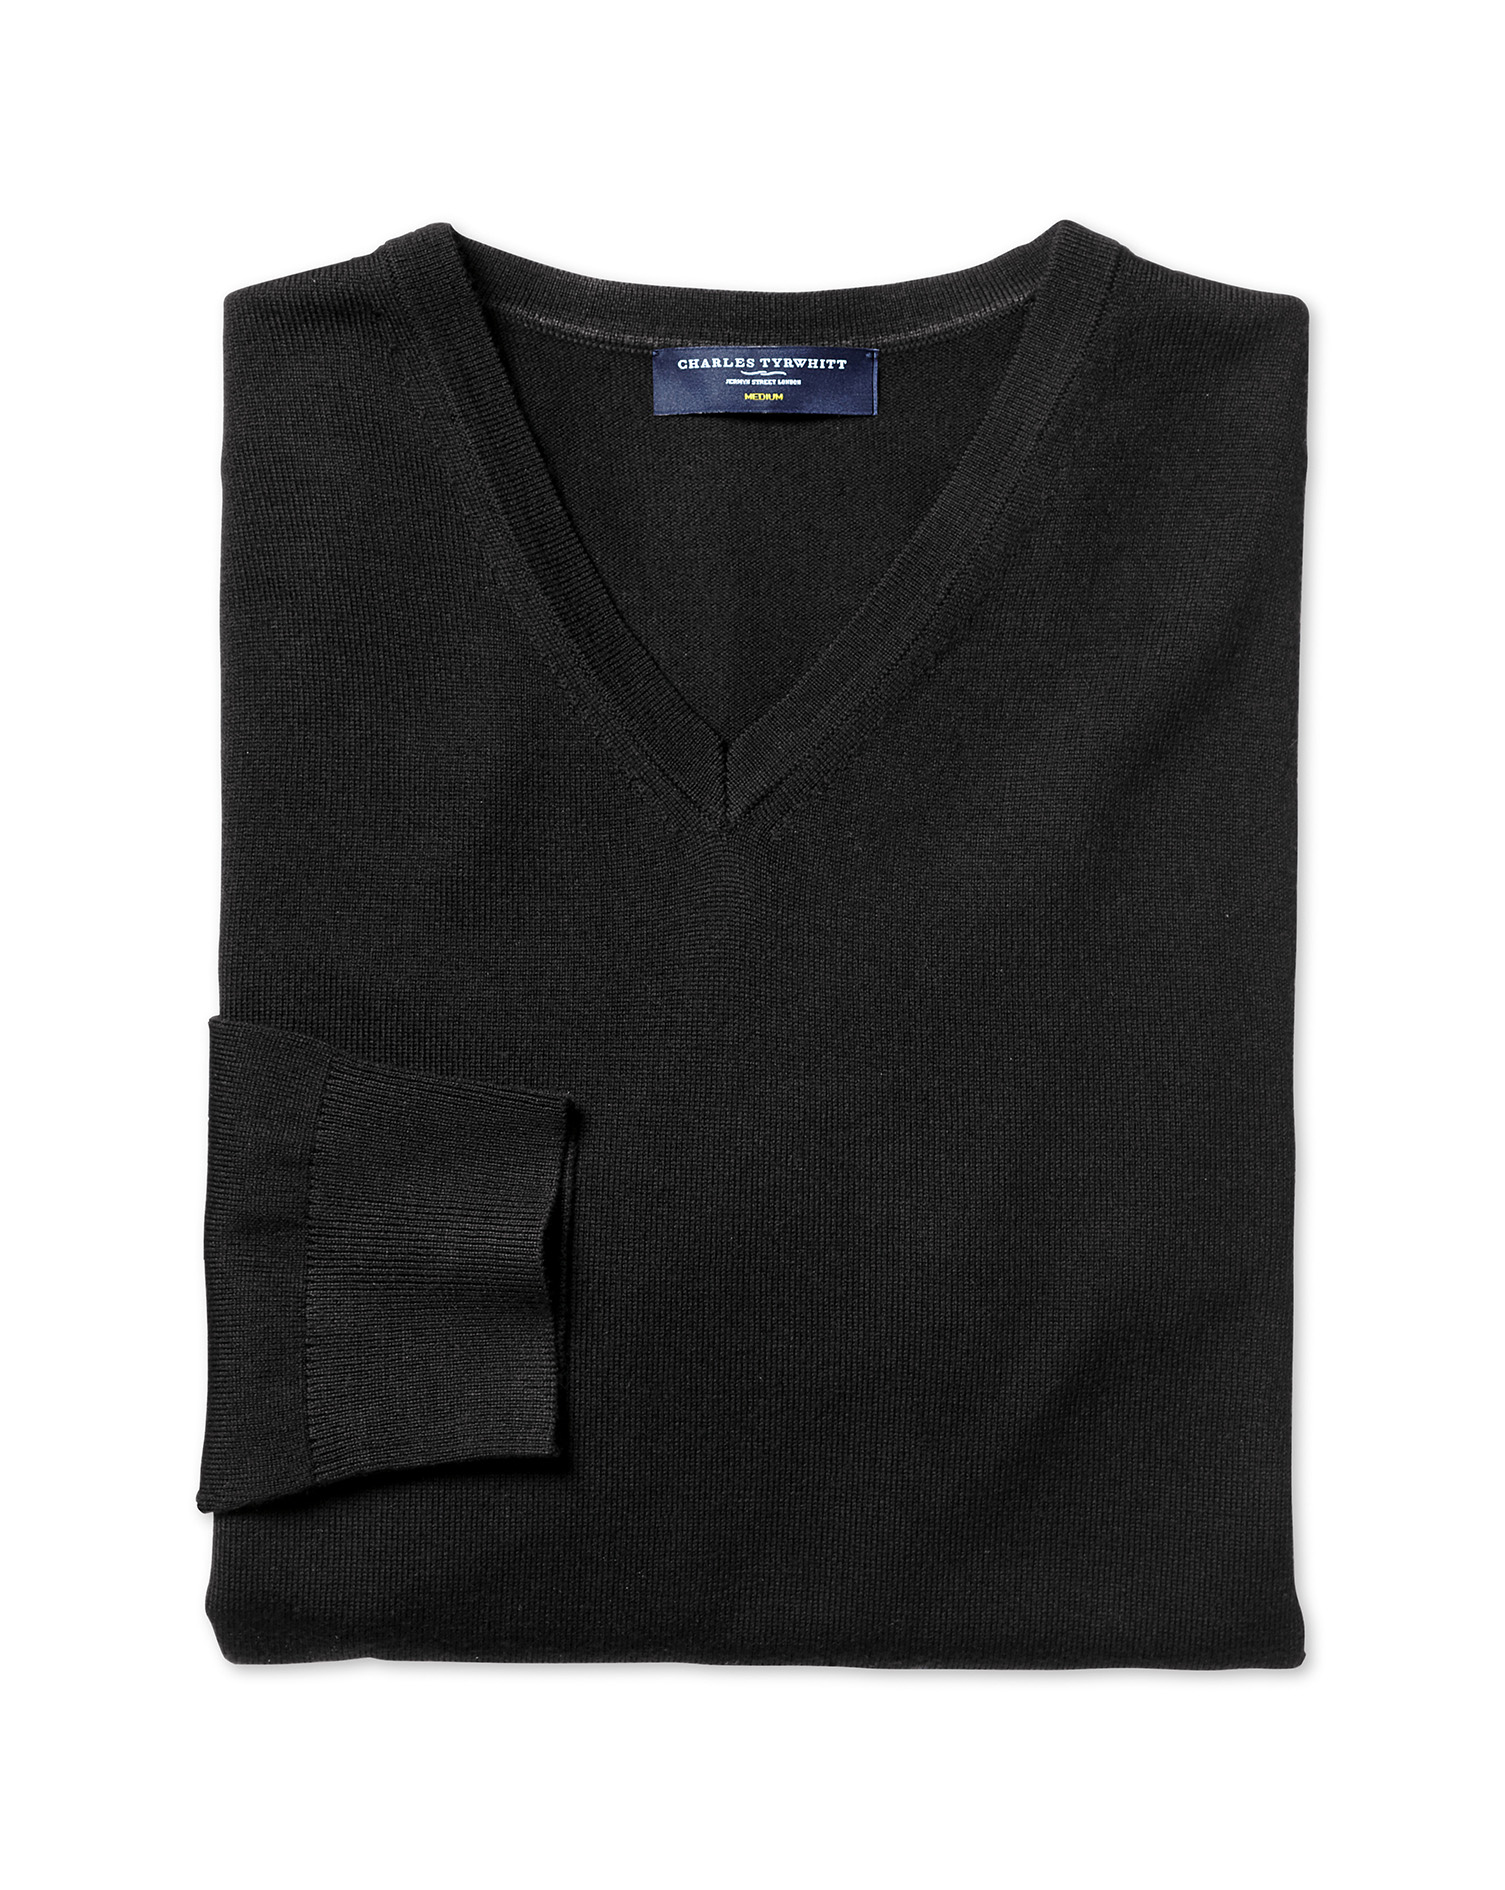 Black Merino Wool V-Neck Jumper Size XS by Charles Tyrwhitt